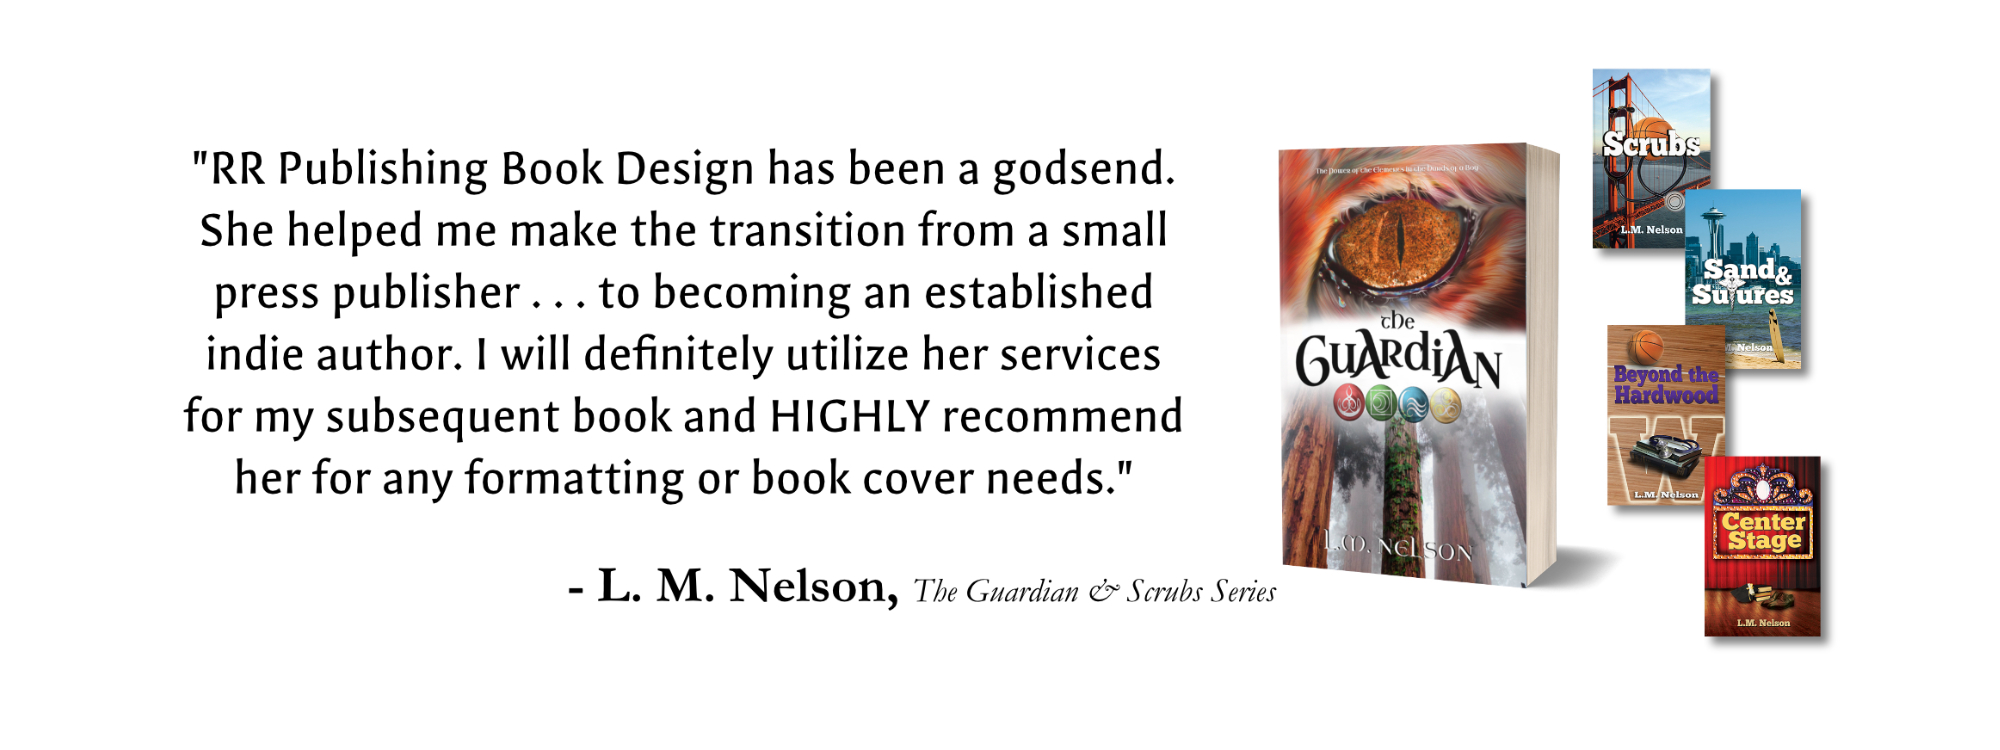 Book design Recommendation from L. M. Nelson